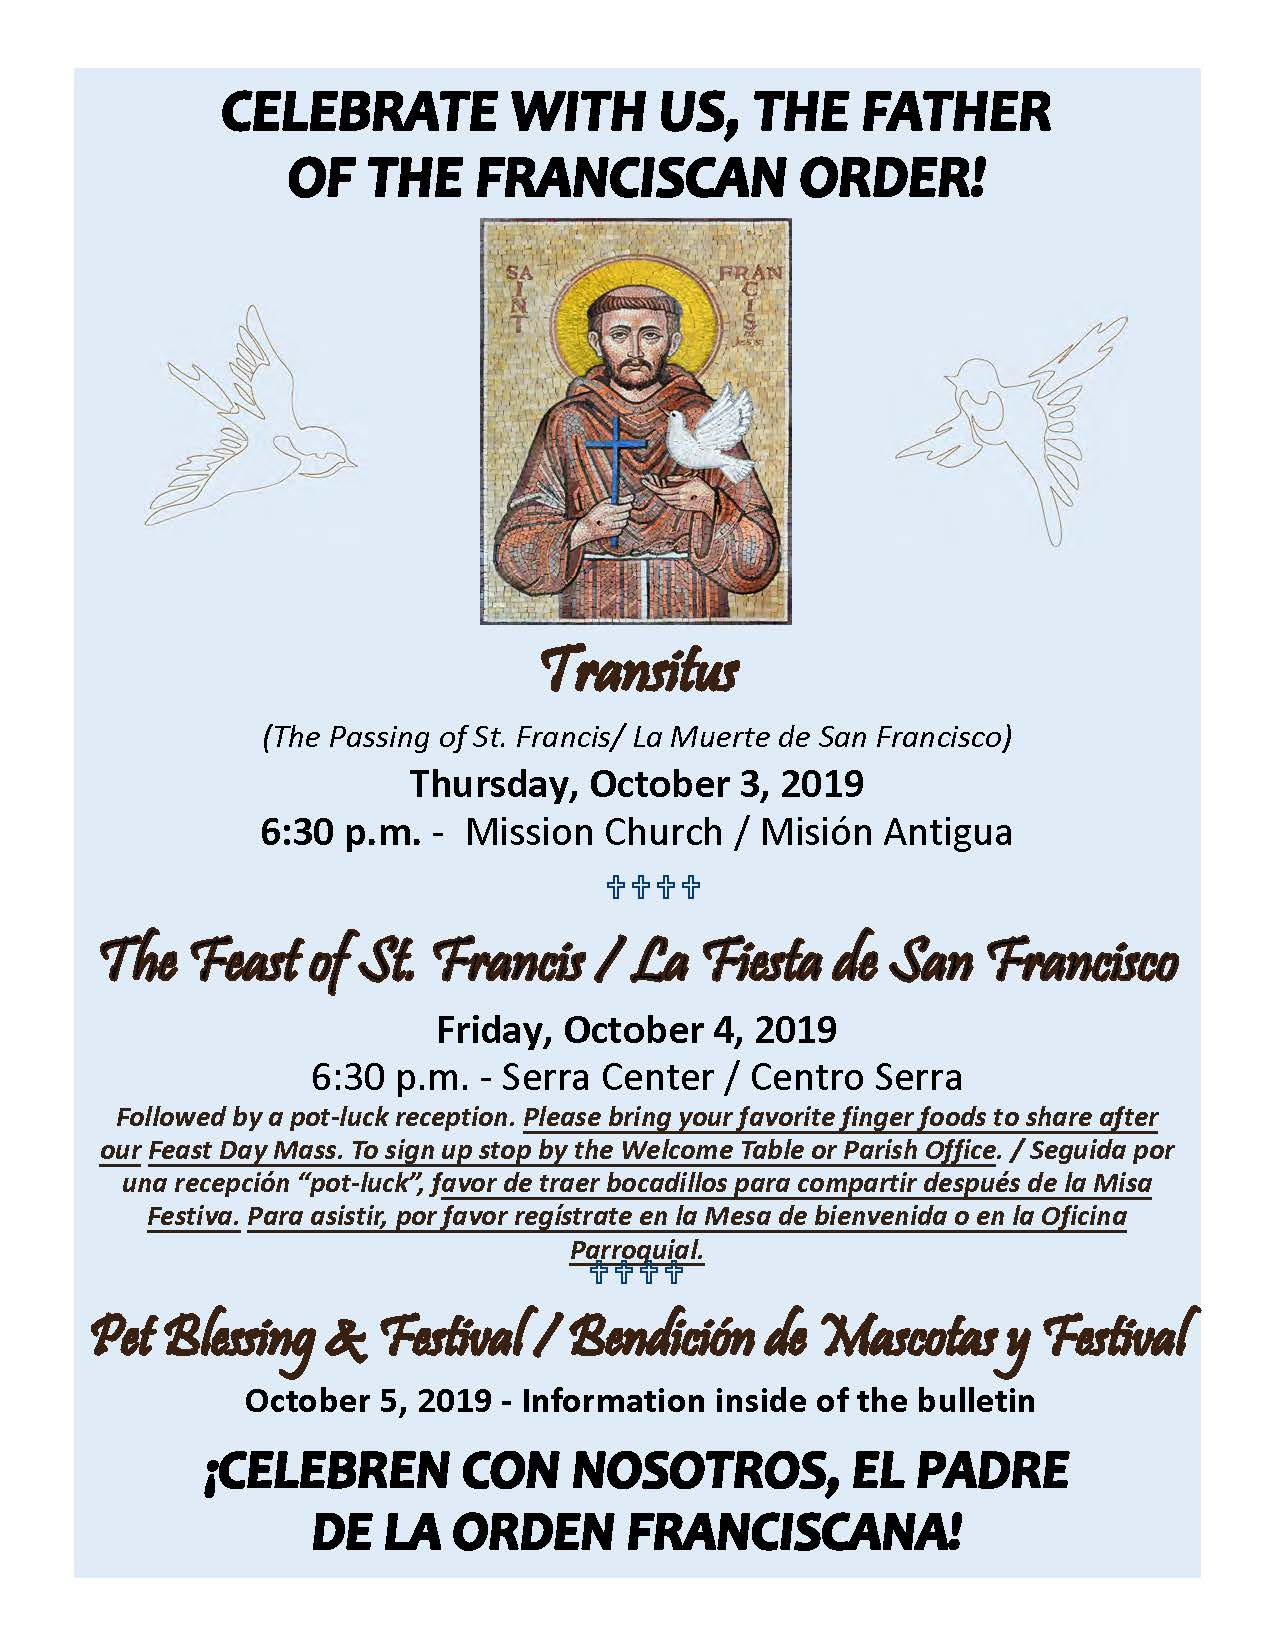 Celebrating St. Francis